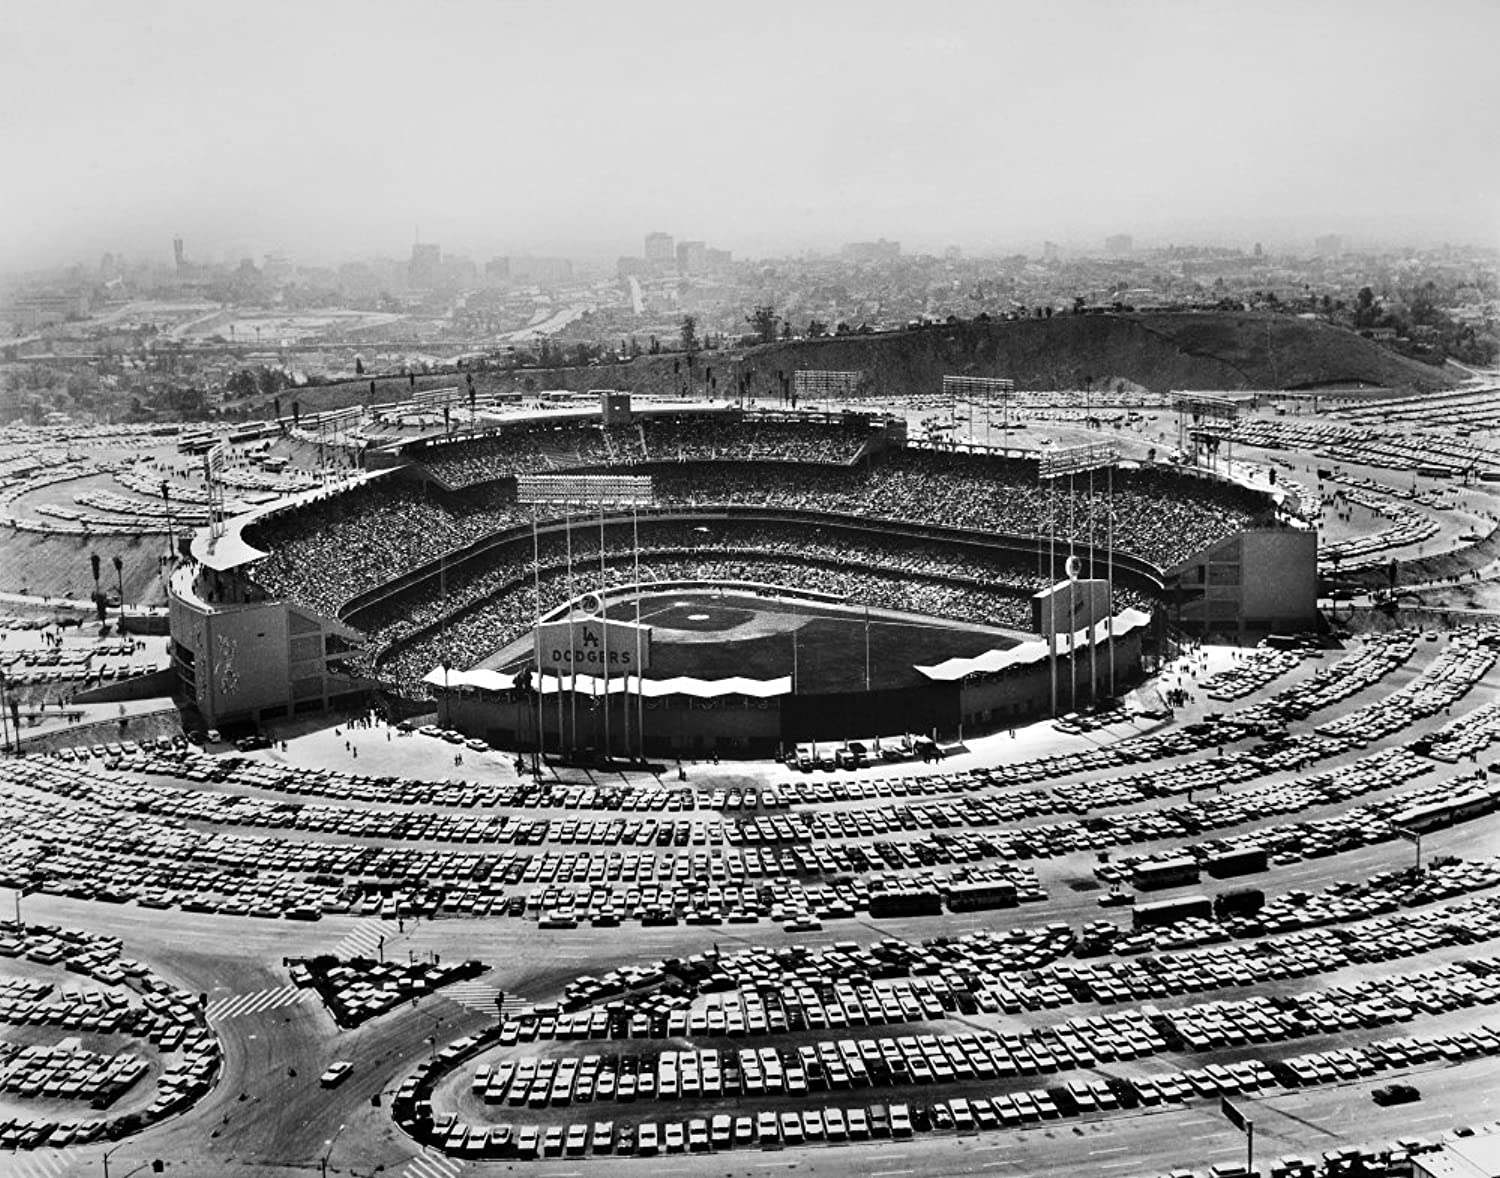 Los Angeles Stadium 1962 Nchavez Ravine The Dodgers Stadium In Los Angeles Calfornia 3 September 1962 An Audience Of More Than 54000 Watch The Dodgers Playing The San Francisco Giants Poster Print by